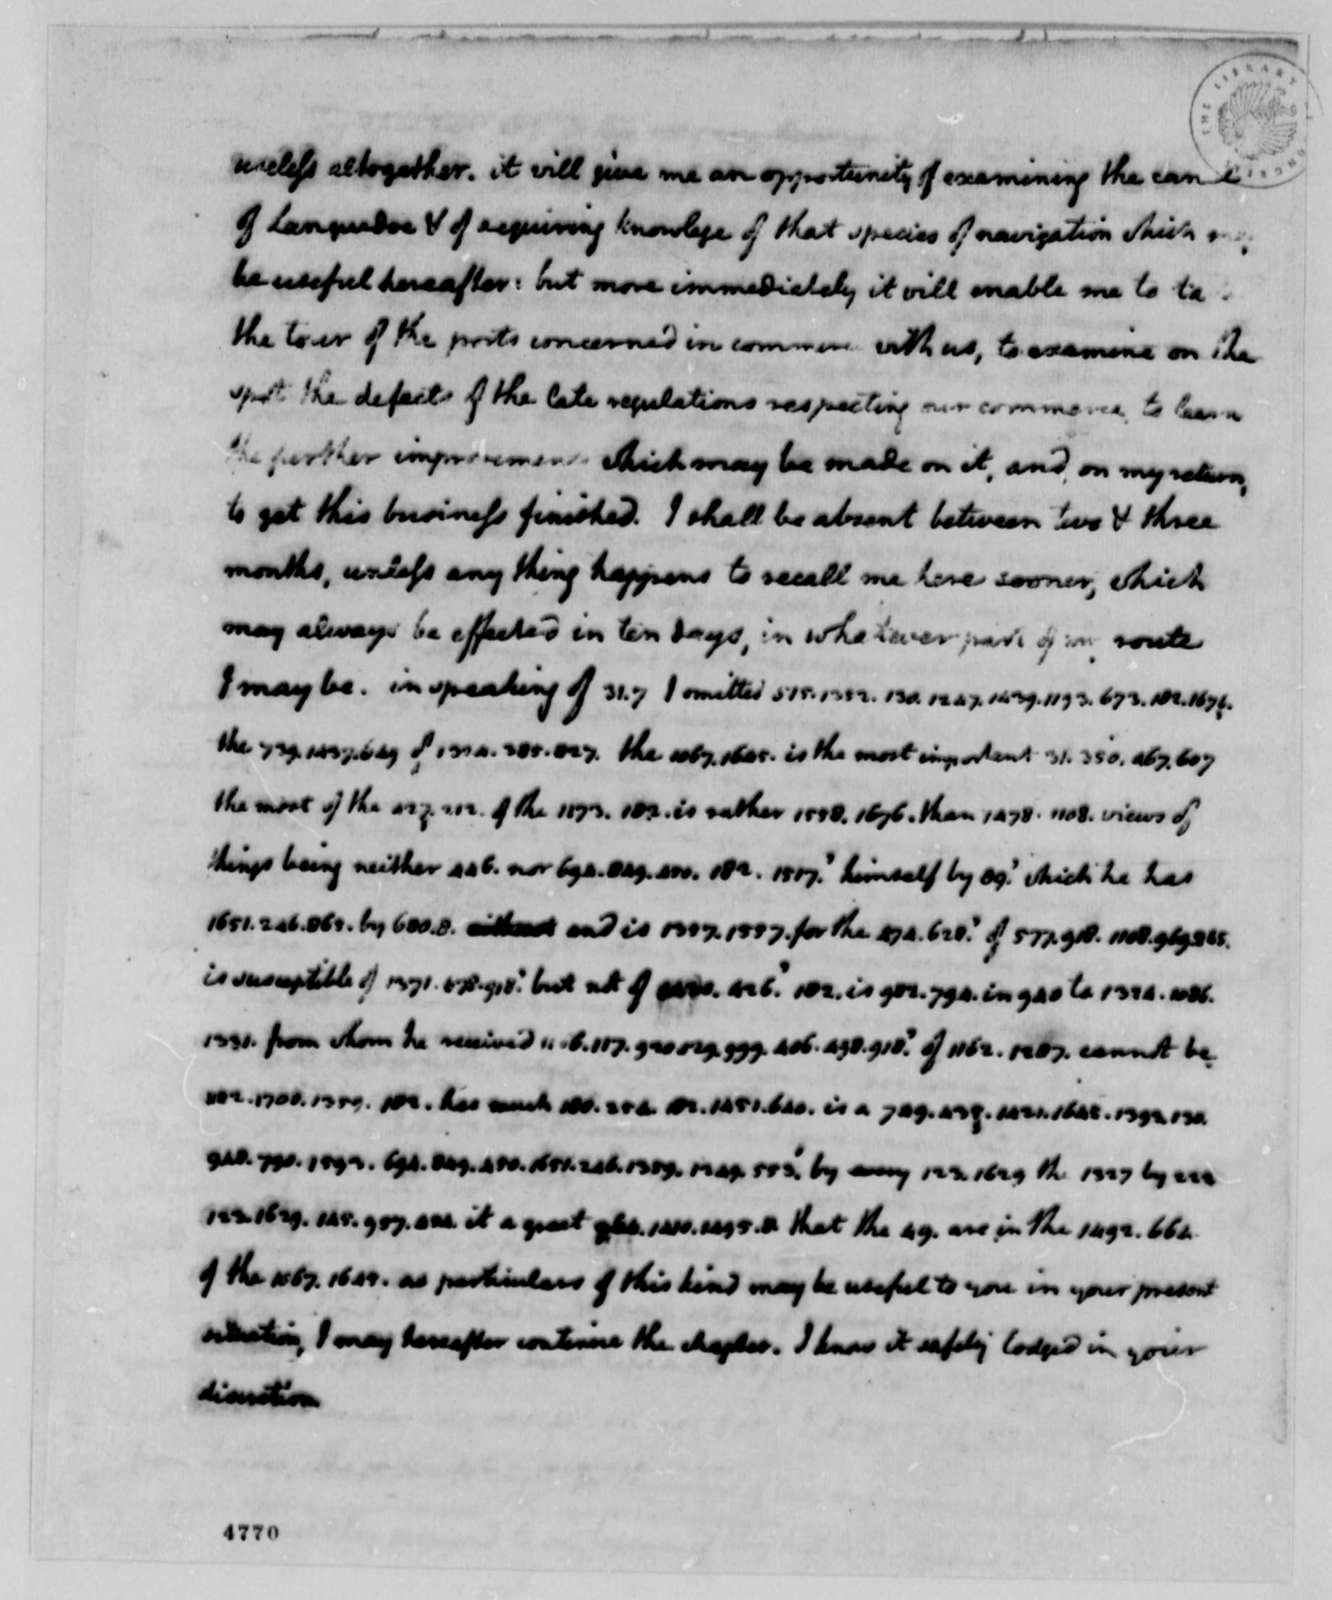 Thomas Jefferson to James Madison, January 30, 1787, with List of Decoded Passages